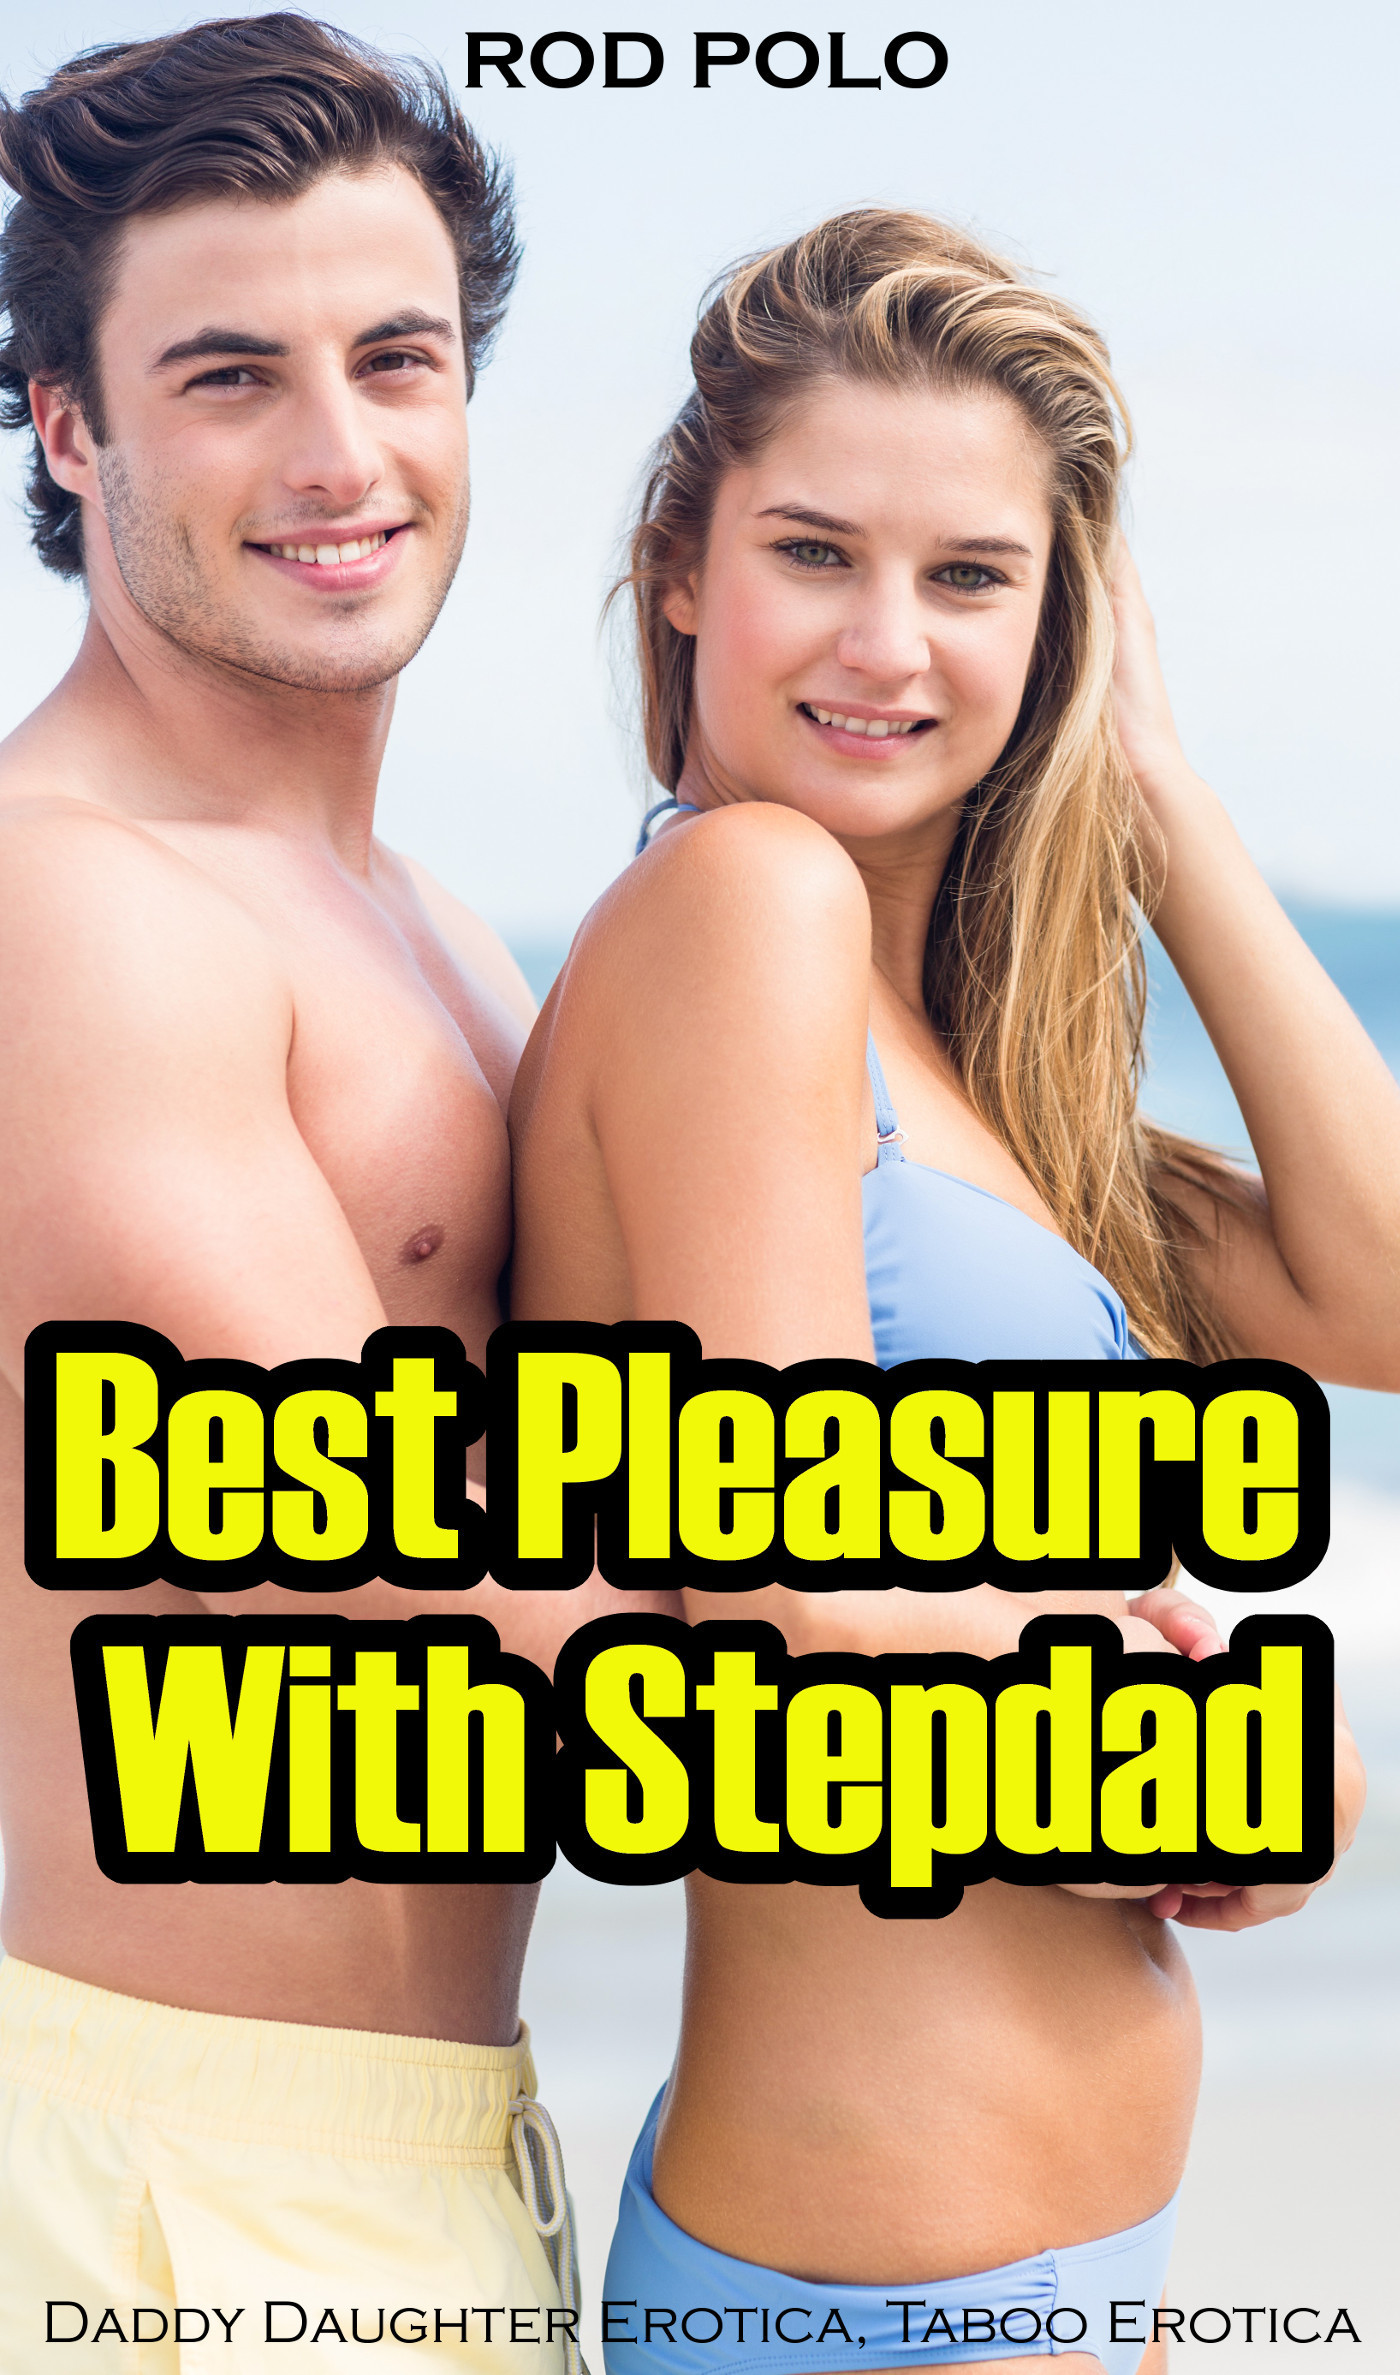 Best Pleasure With Stepdad Rod Polo